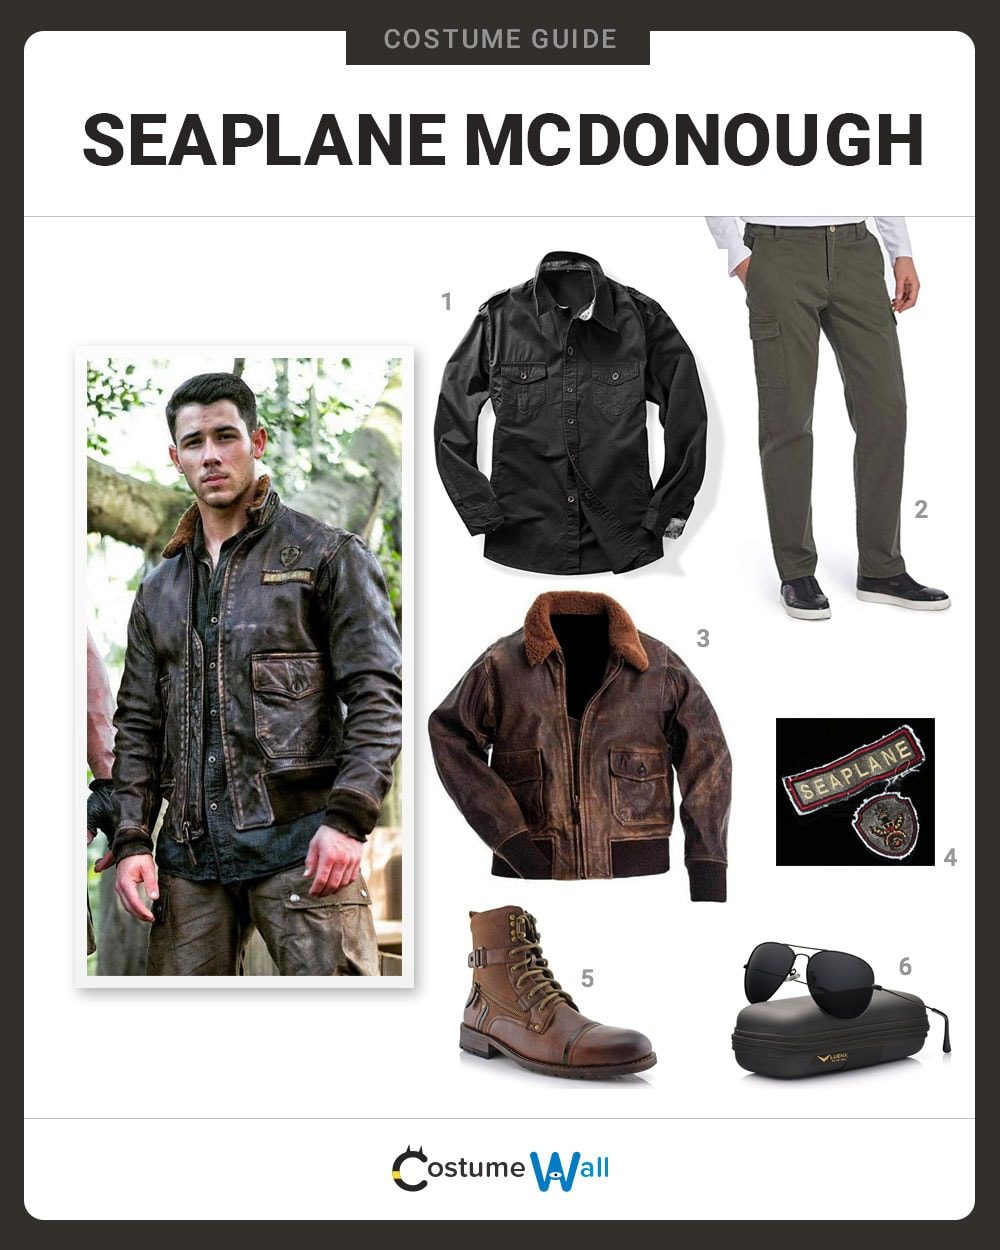 Seaplane McDonough Costume Guide